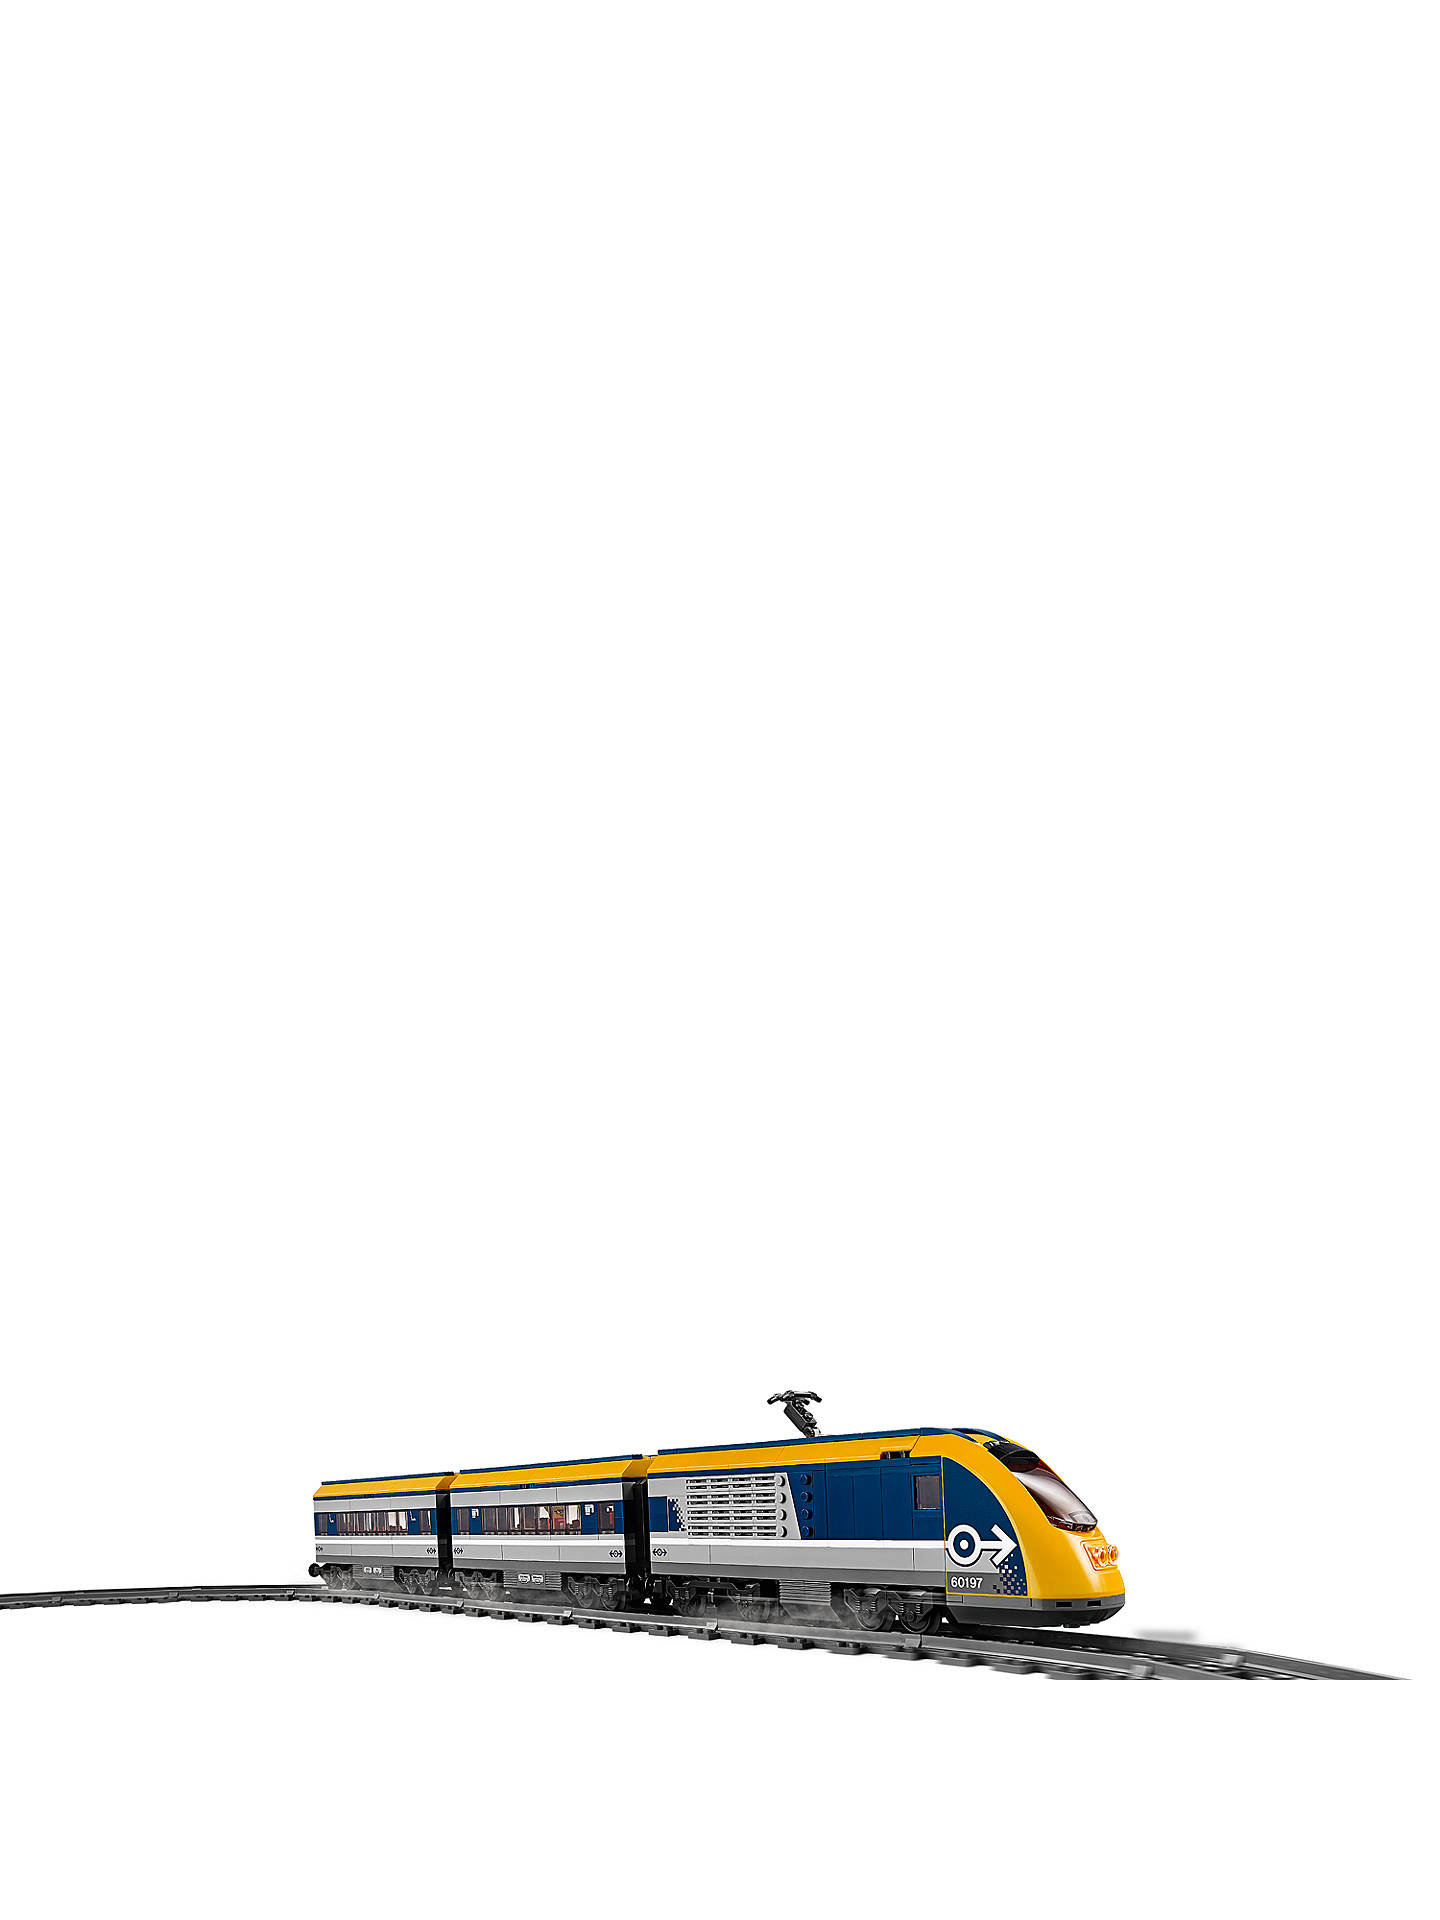 BuyLEGO City 60197 Passenger Train Online at johnlewis.com